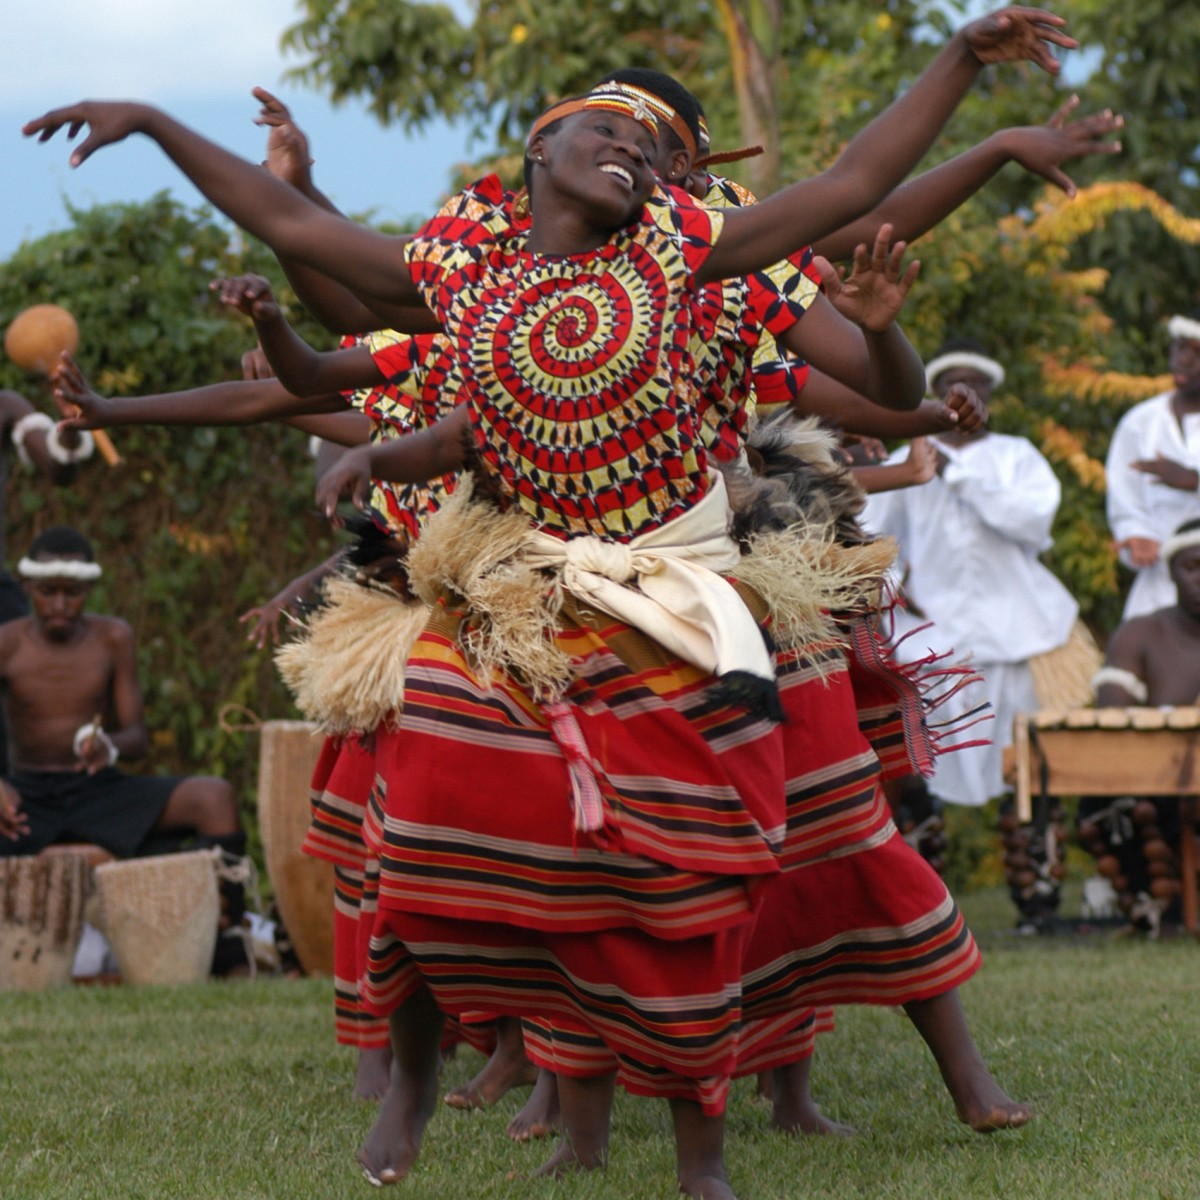 baganda dance cultural uganda ancient buganda culture ugandan traditions kingdom african traditional africa dancing dances dancers tribe cultures ganda tribal